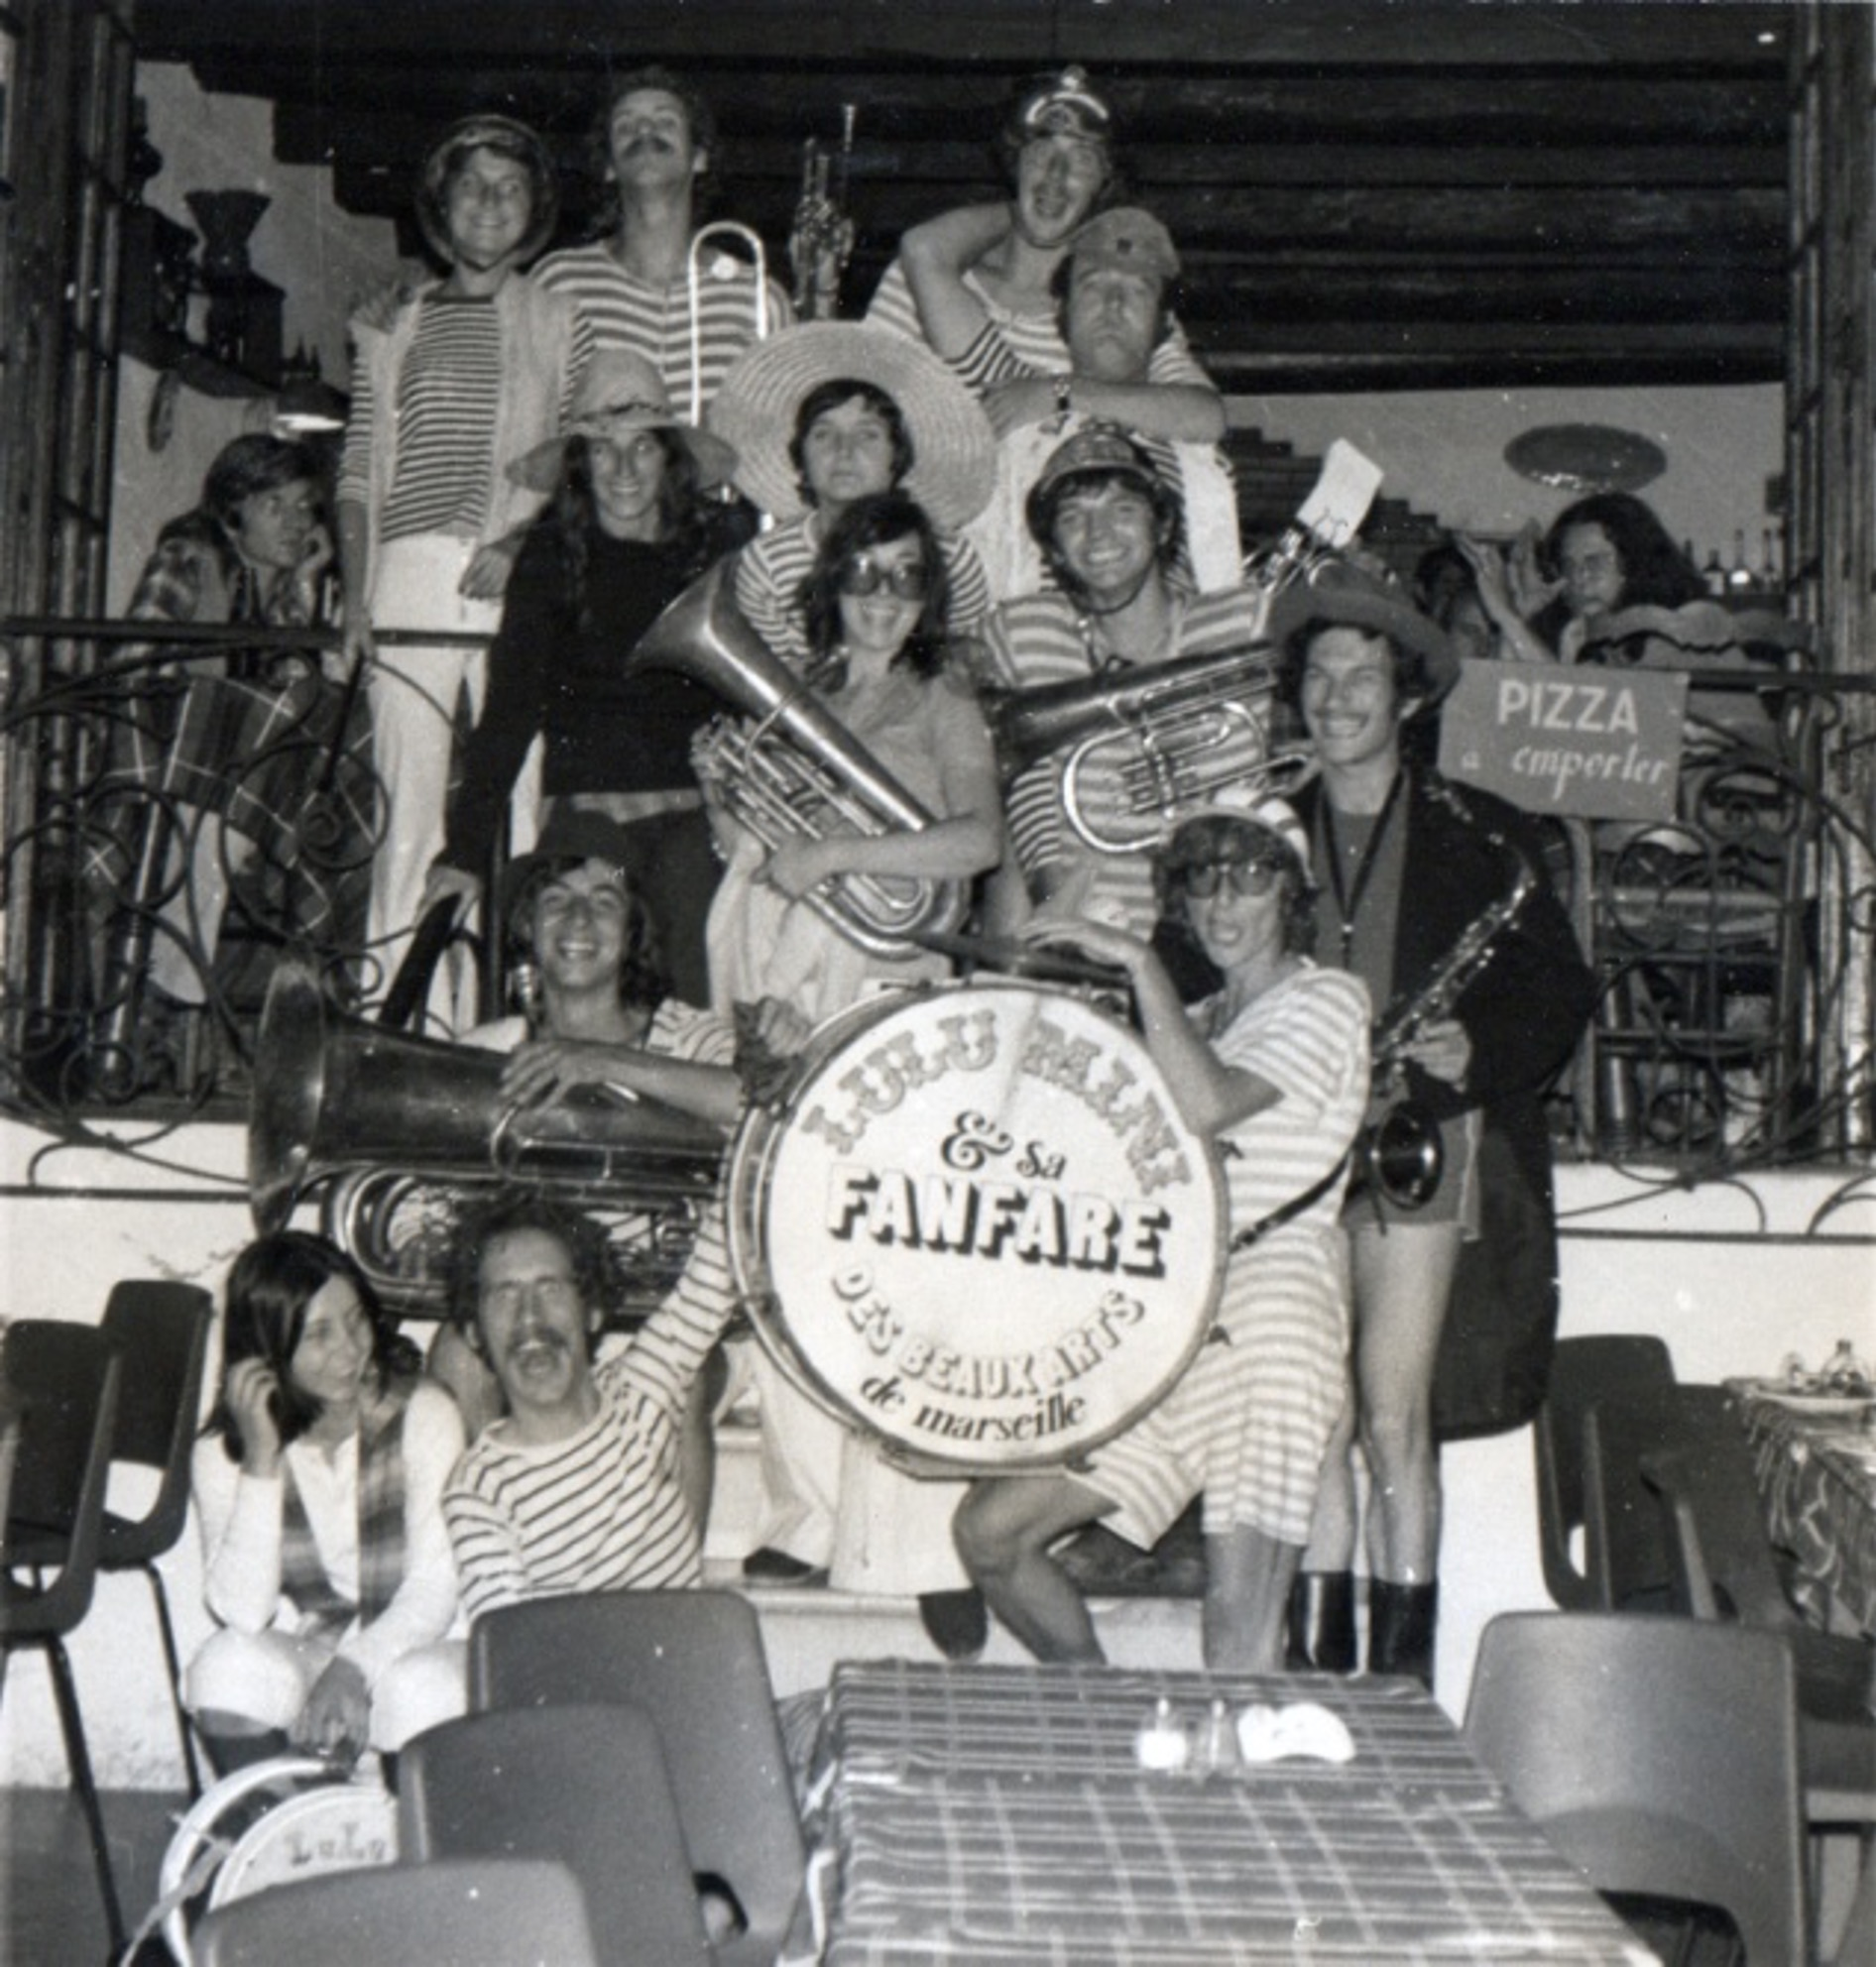 Fanfare-BA-Marseille_Lulu-Mini_Photo-02_19720903.jpg